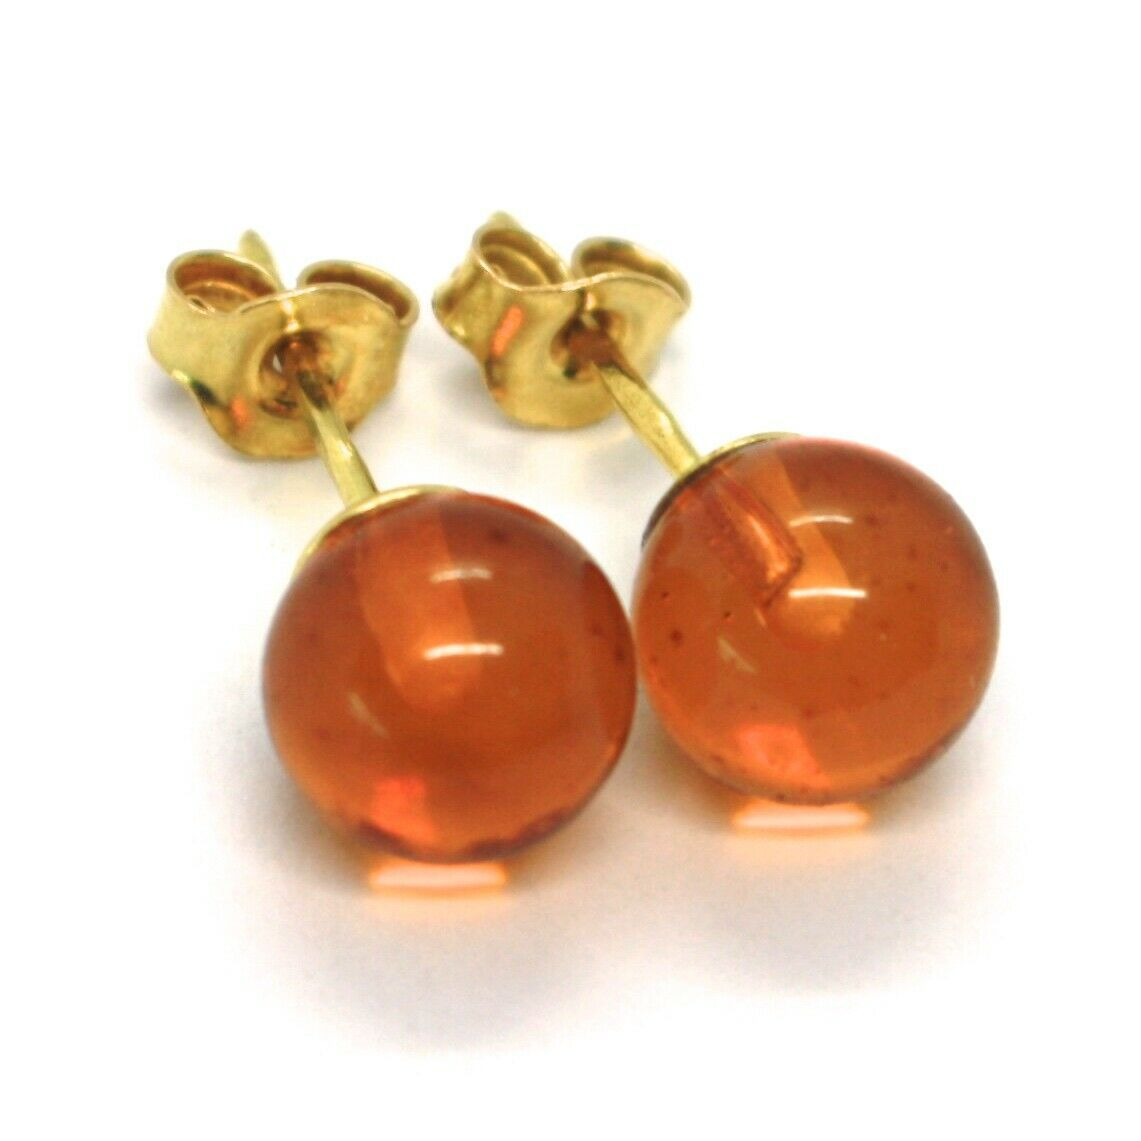 SOLID 18K YELLOW GOLD LOBE EARRINGS, ORANGE AMBER 8 MM SPHERES BUTTERFLY CLOSURE